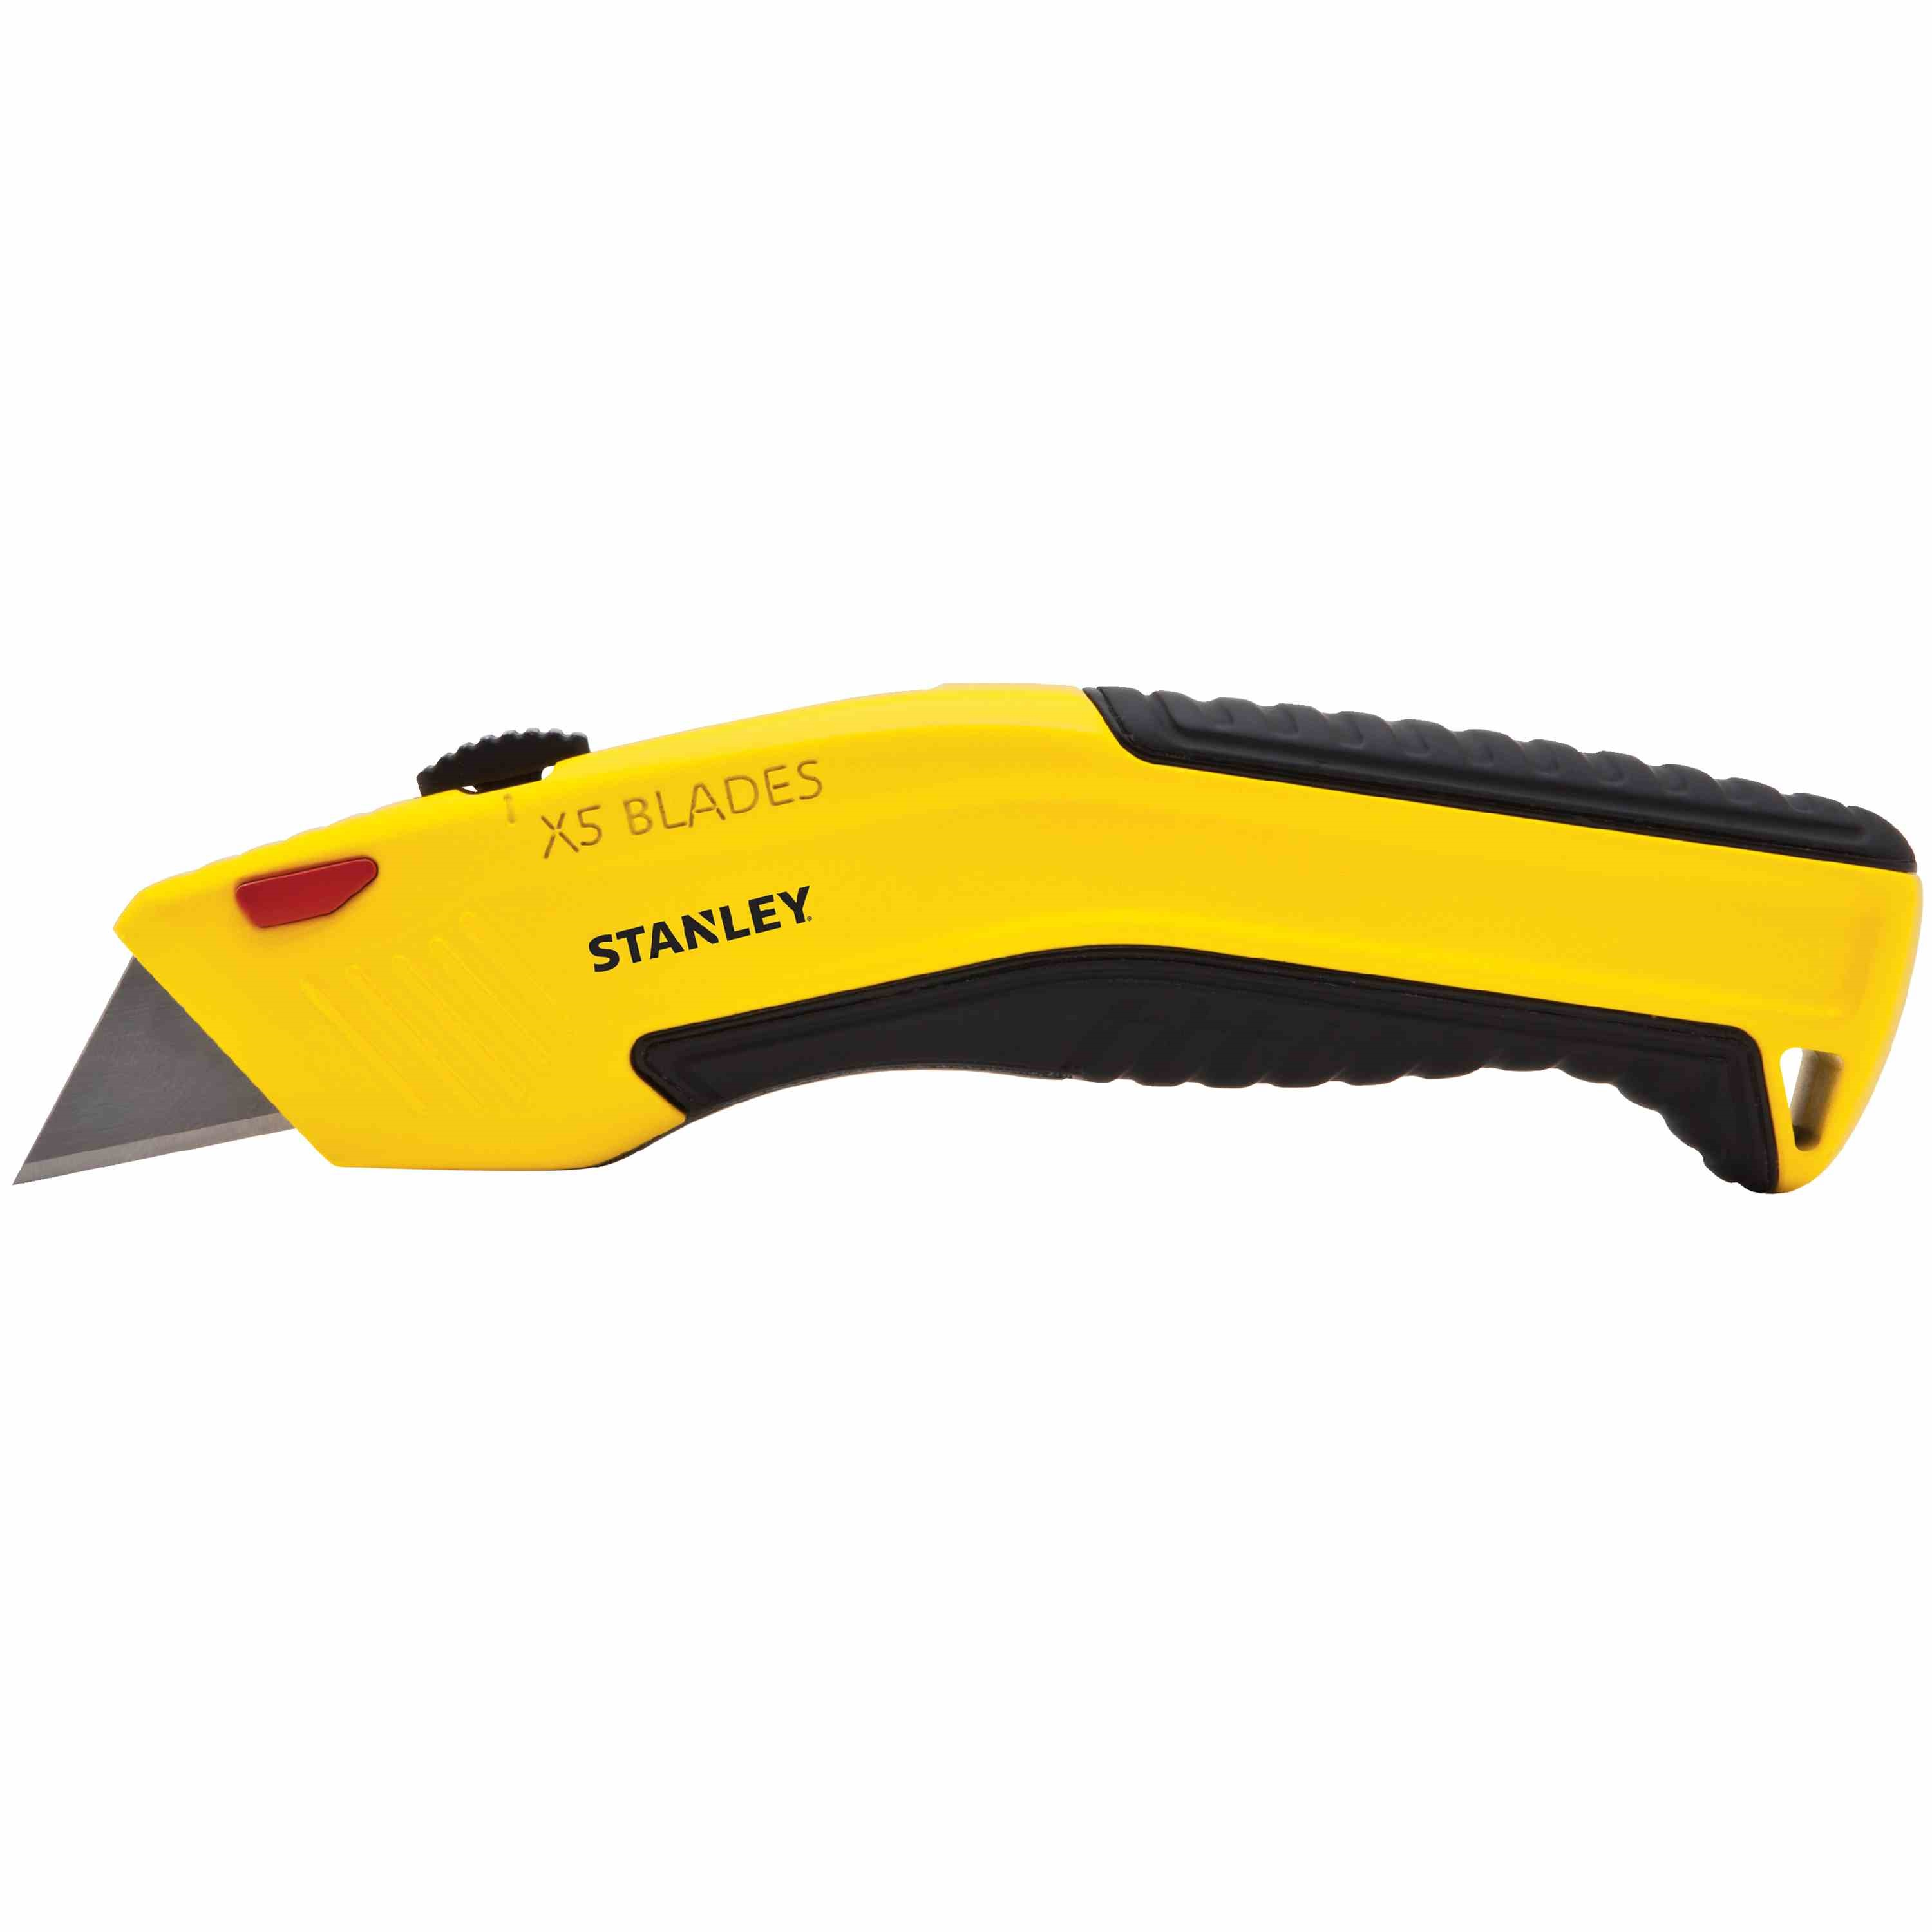 Stanley Tools - 613 in InstantFeed Knife - STHT10237